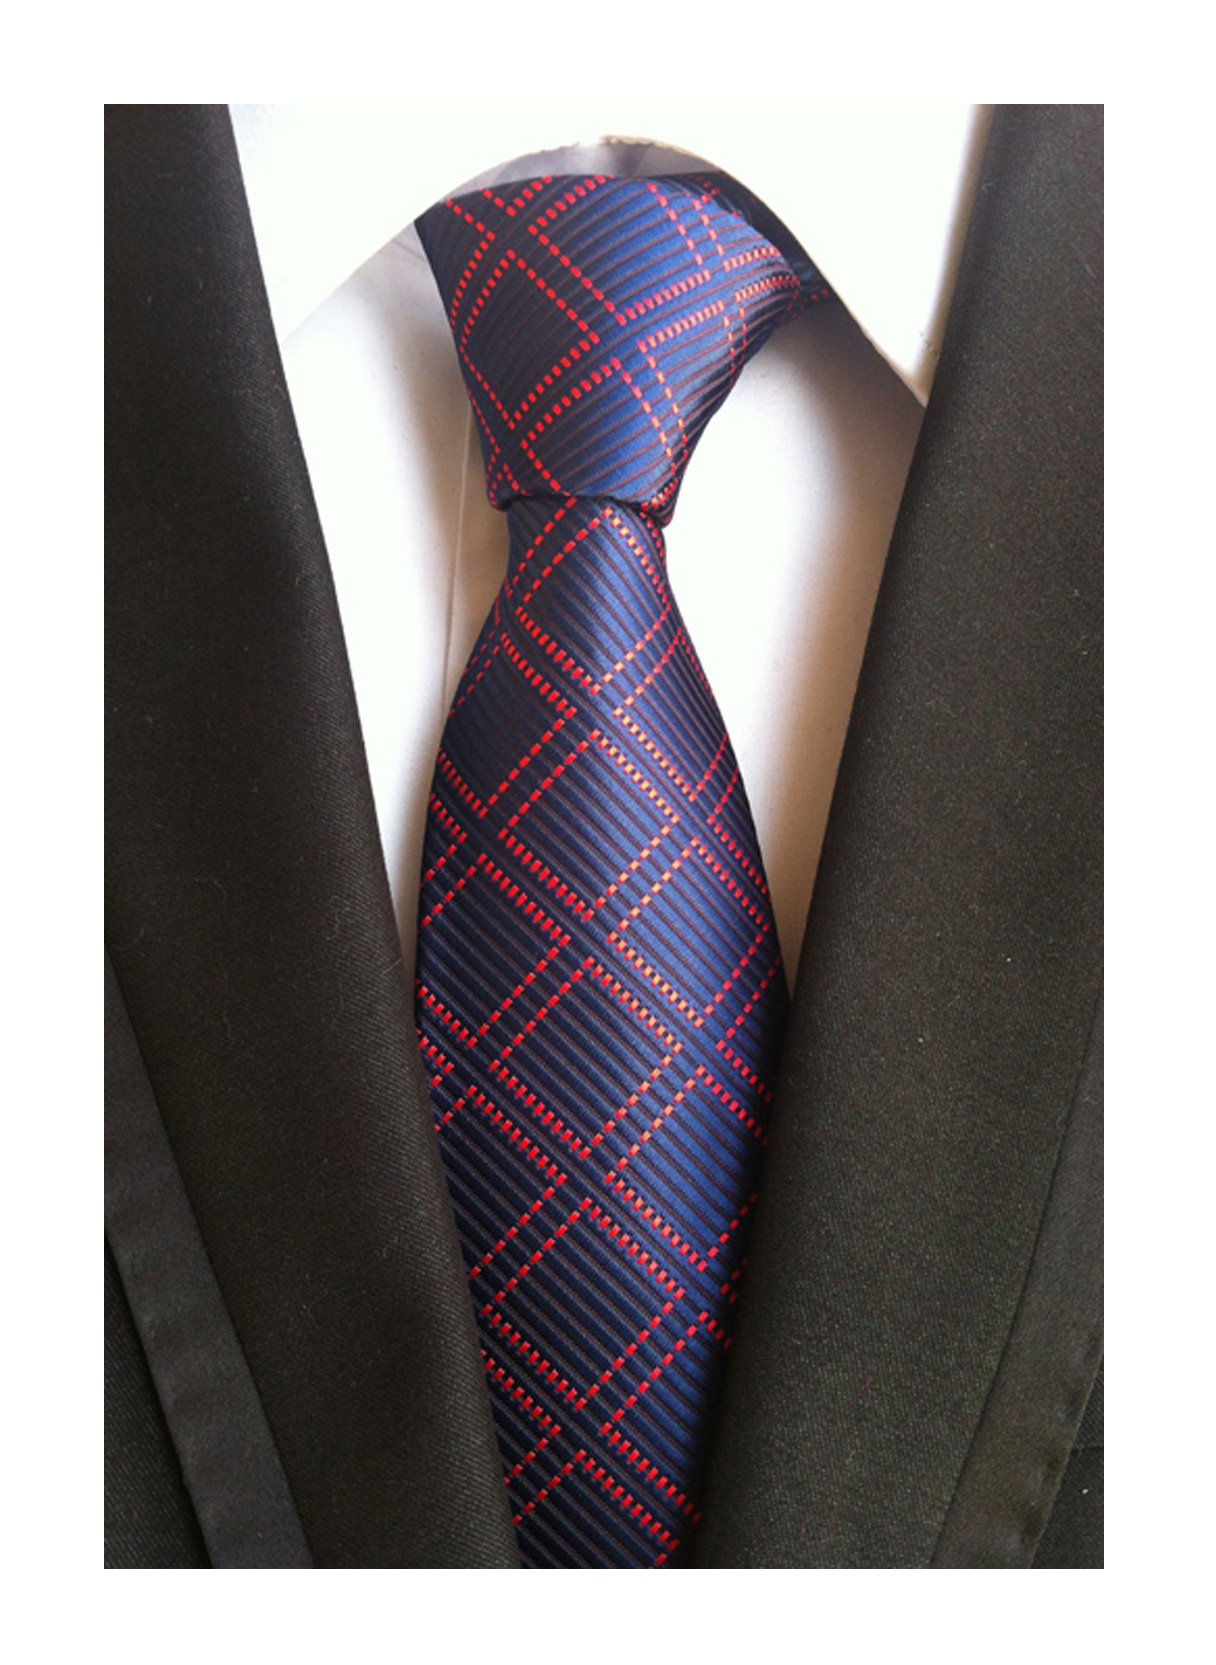 Men's Red and Navy BLUE Ties Checks Patterned Graduation Student Silk Neckties